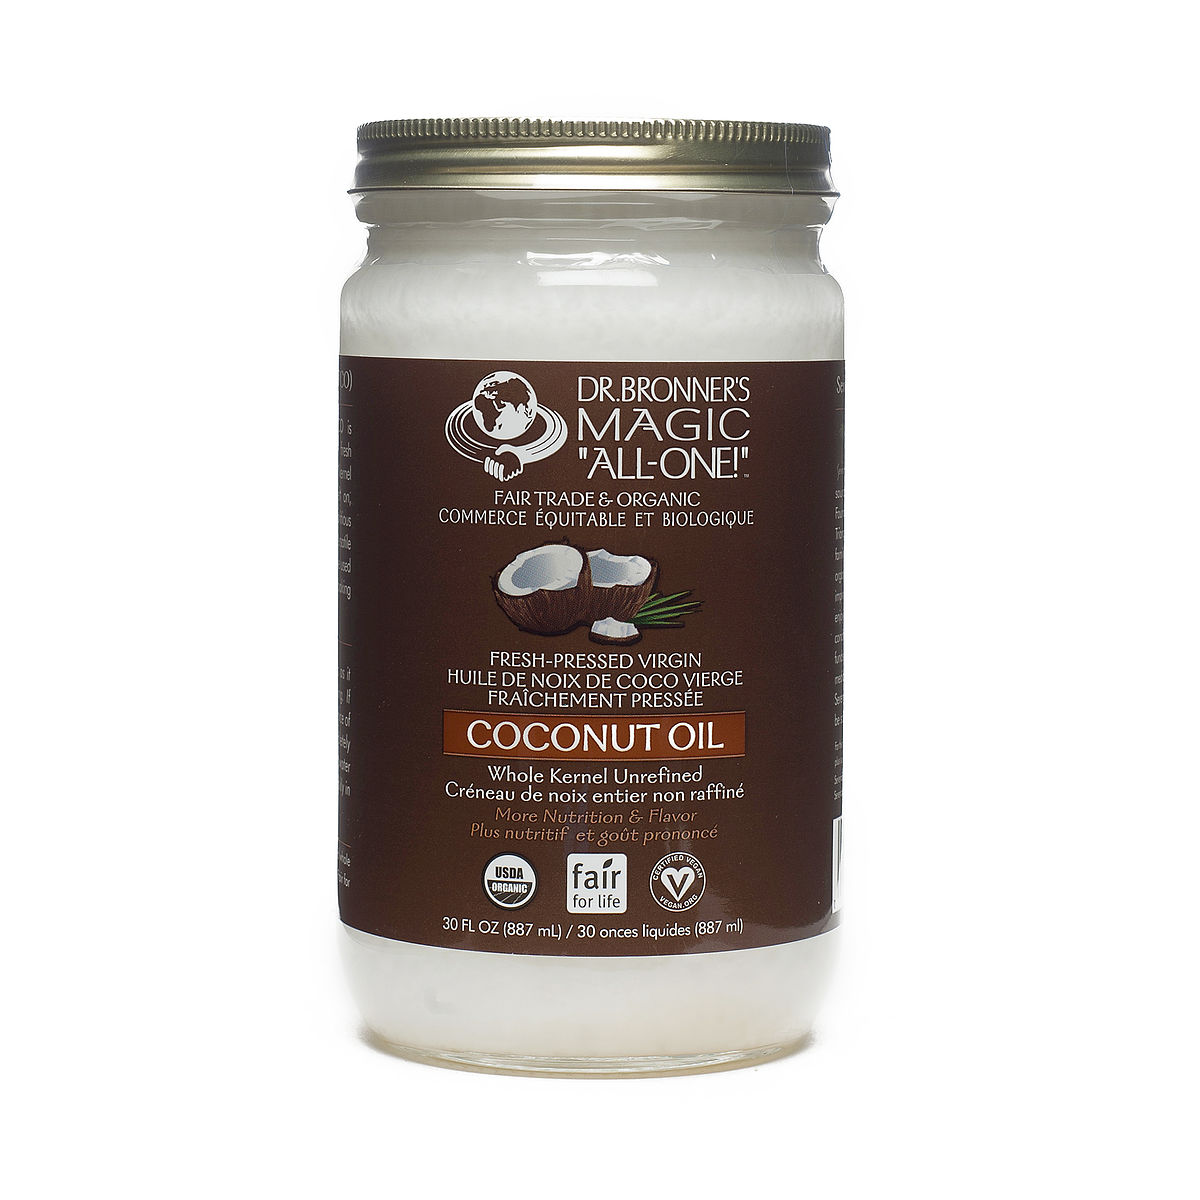 Dr. Bronner's Organic Fair Trade Virgin Coconut Oil